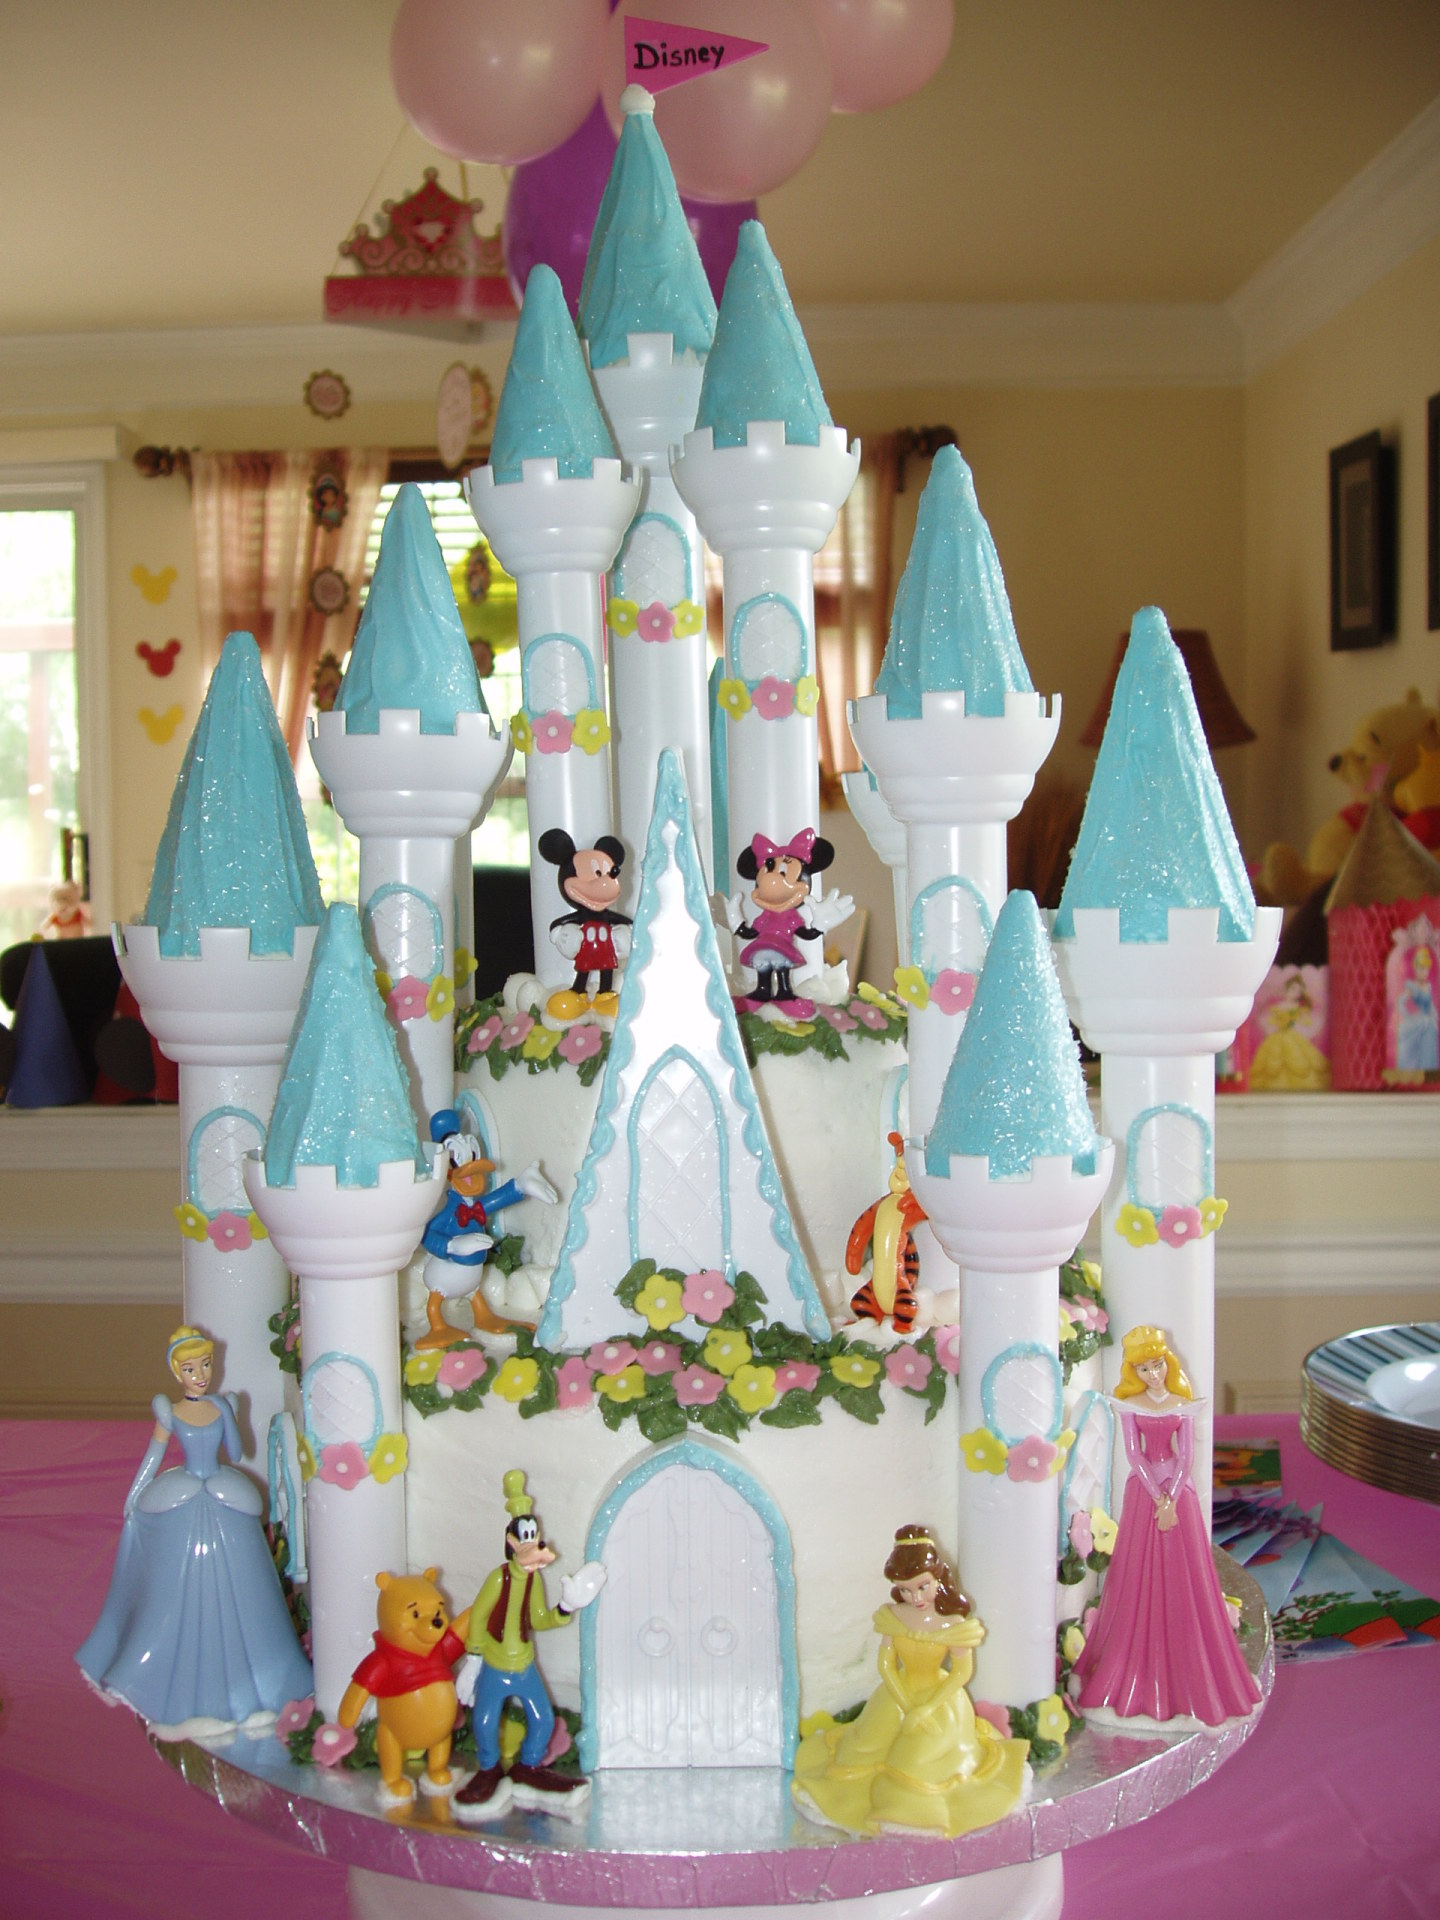 Blue Disney castle cake